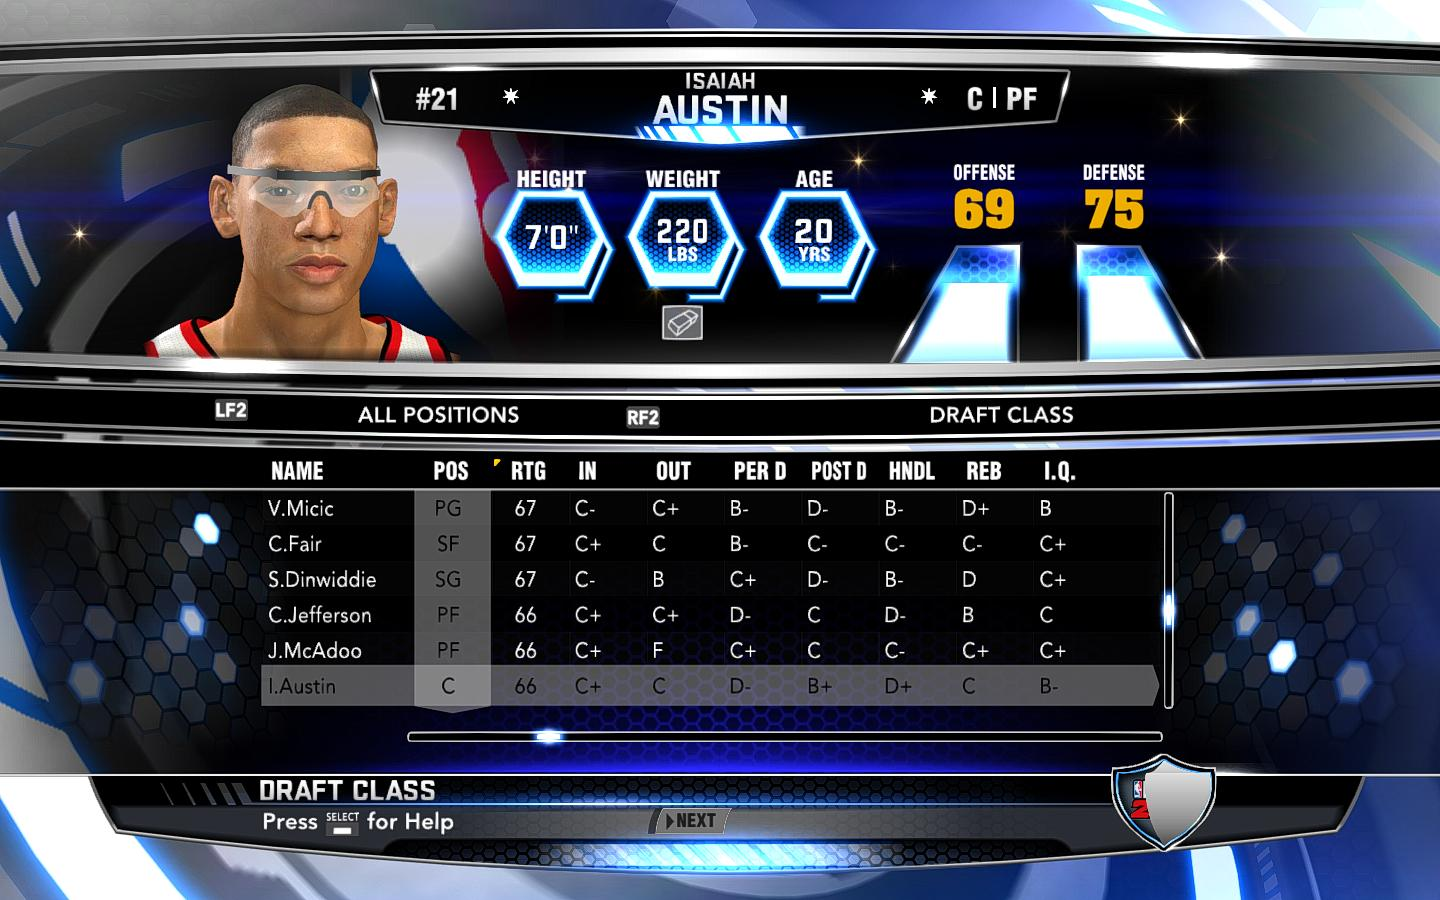 2K Games adds Isaiah Austin to NBA 2K15 roster